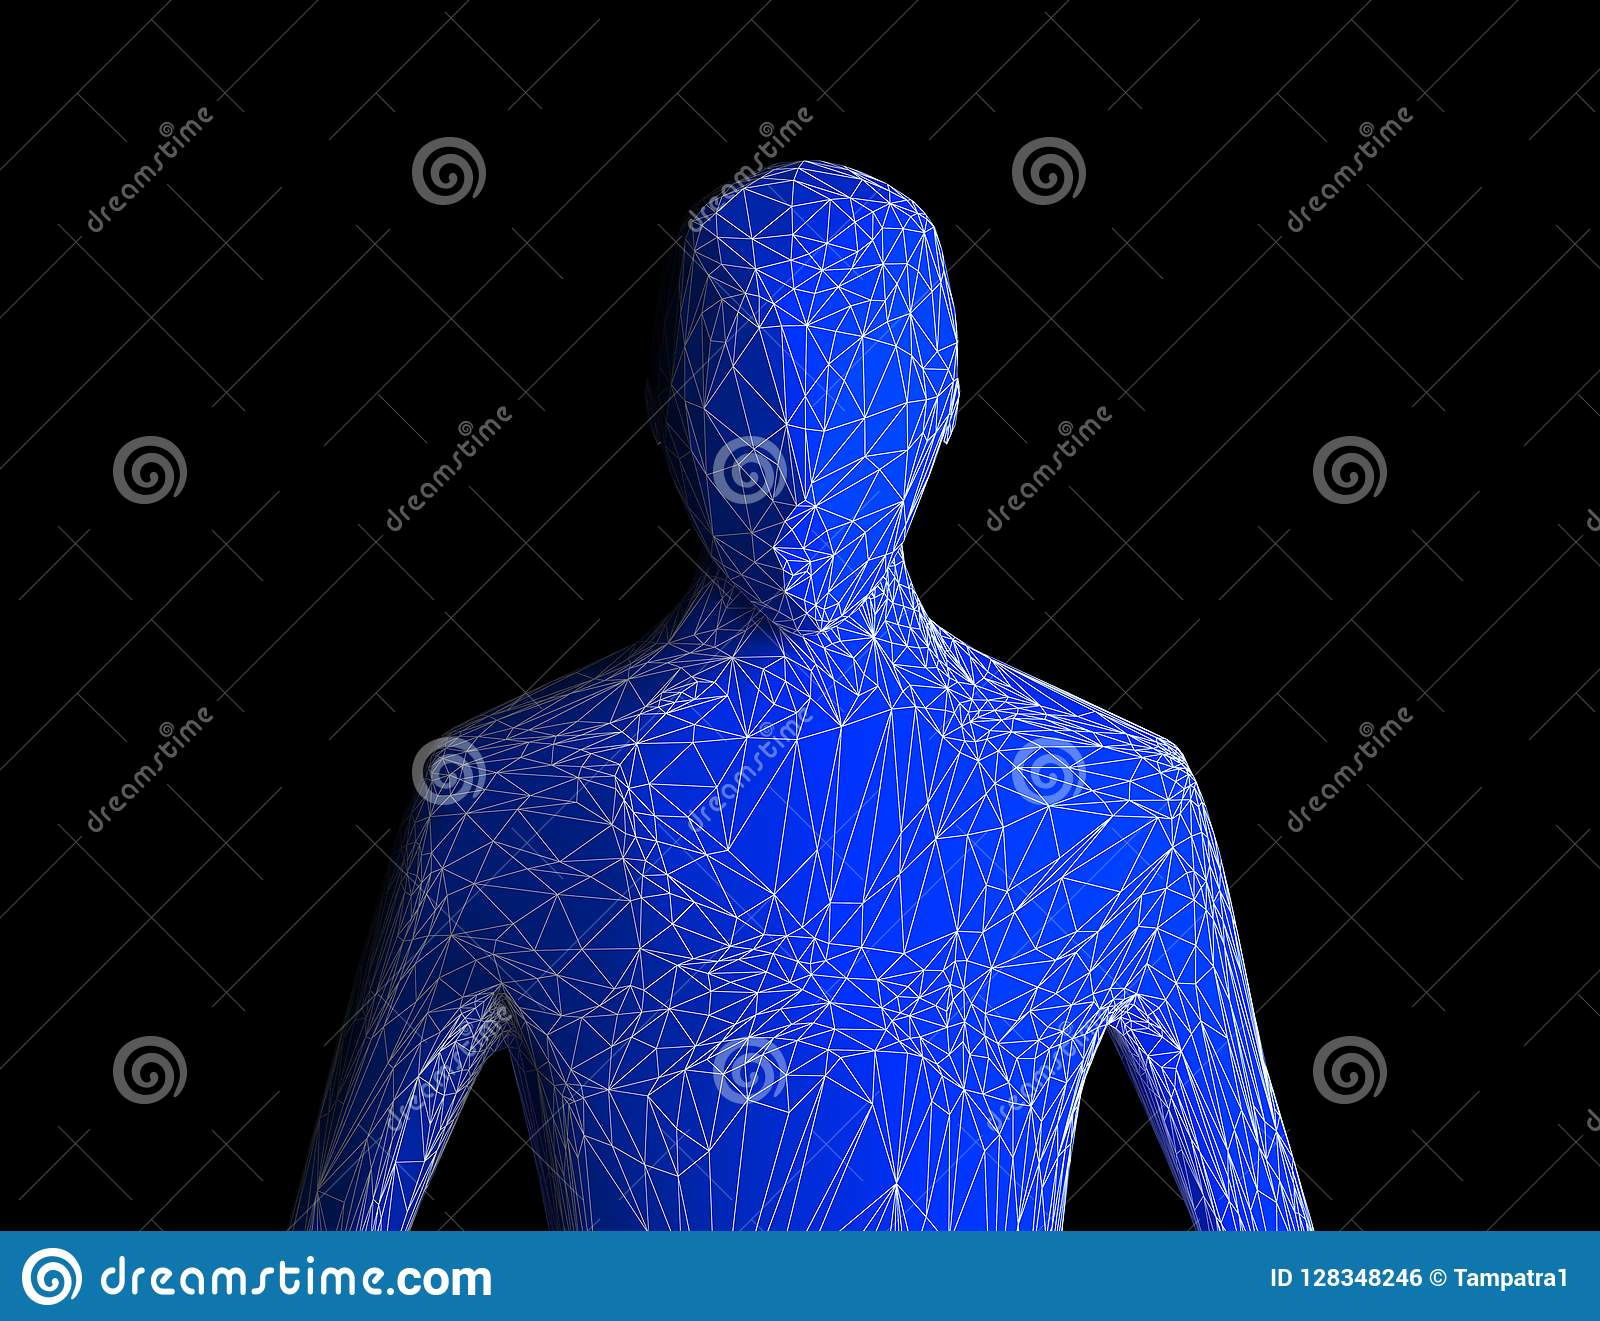 Blue human body isolated on black background. Artificial intelligence high-tech in digital computer technology concept.